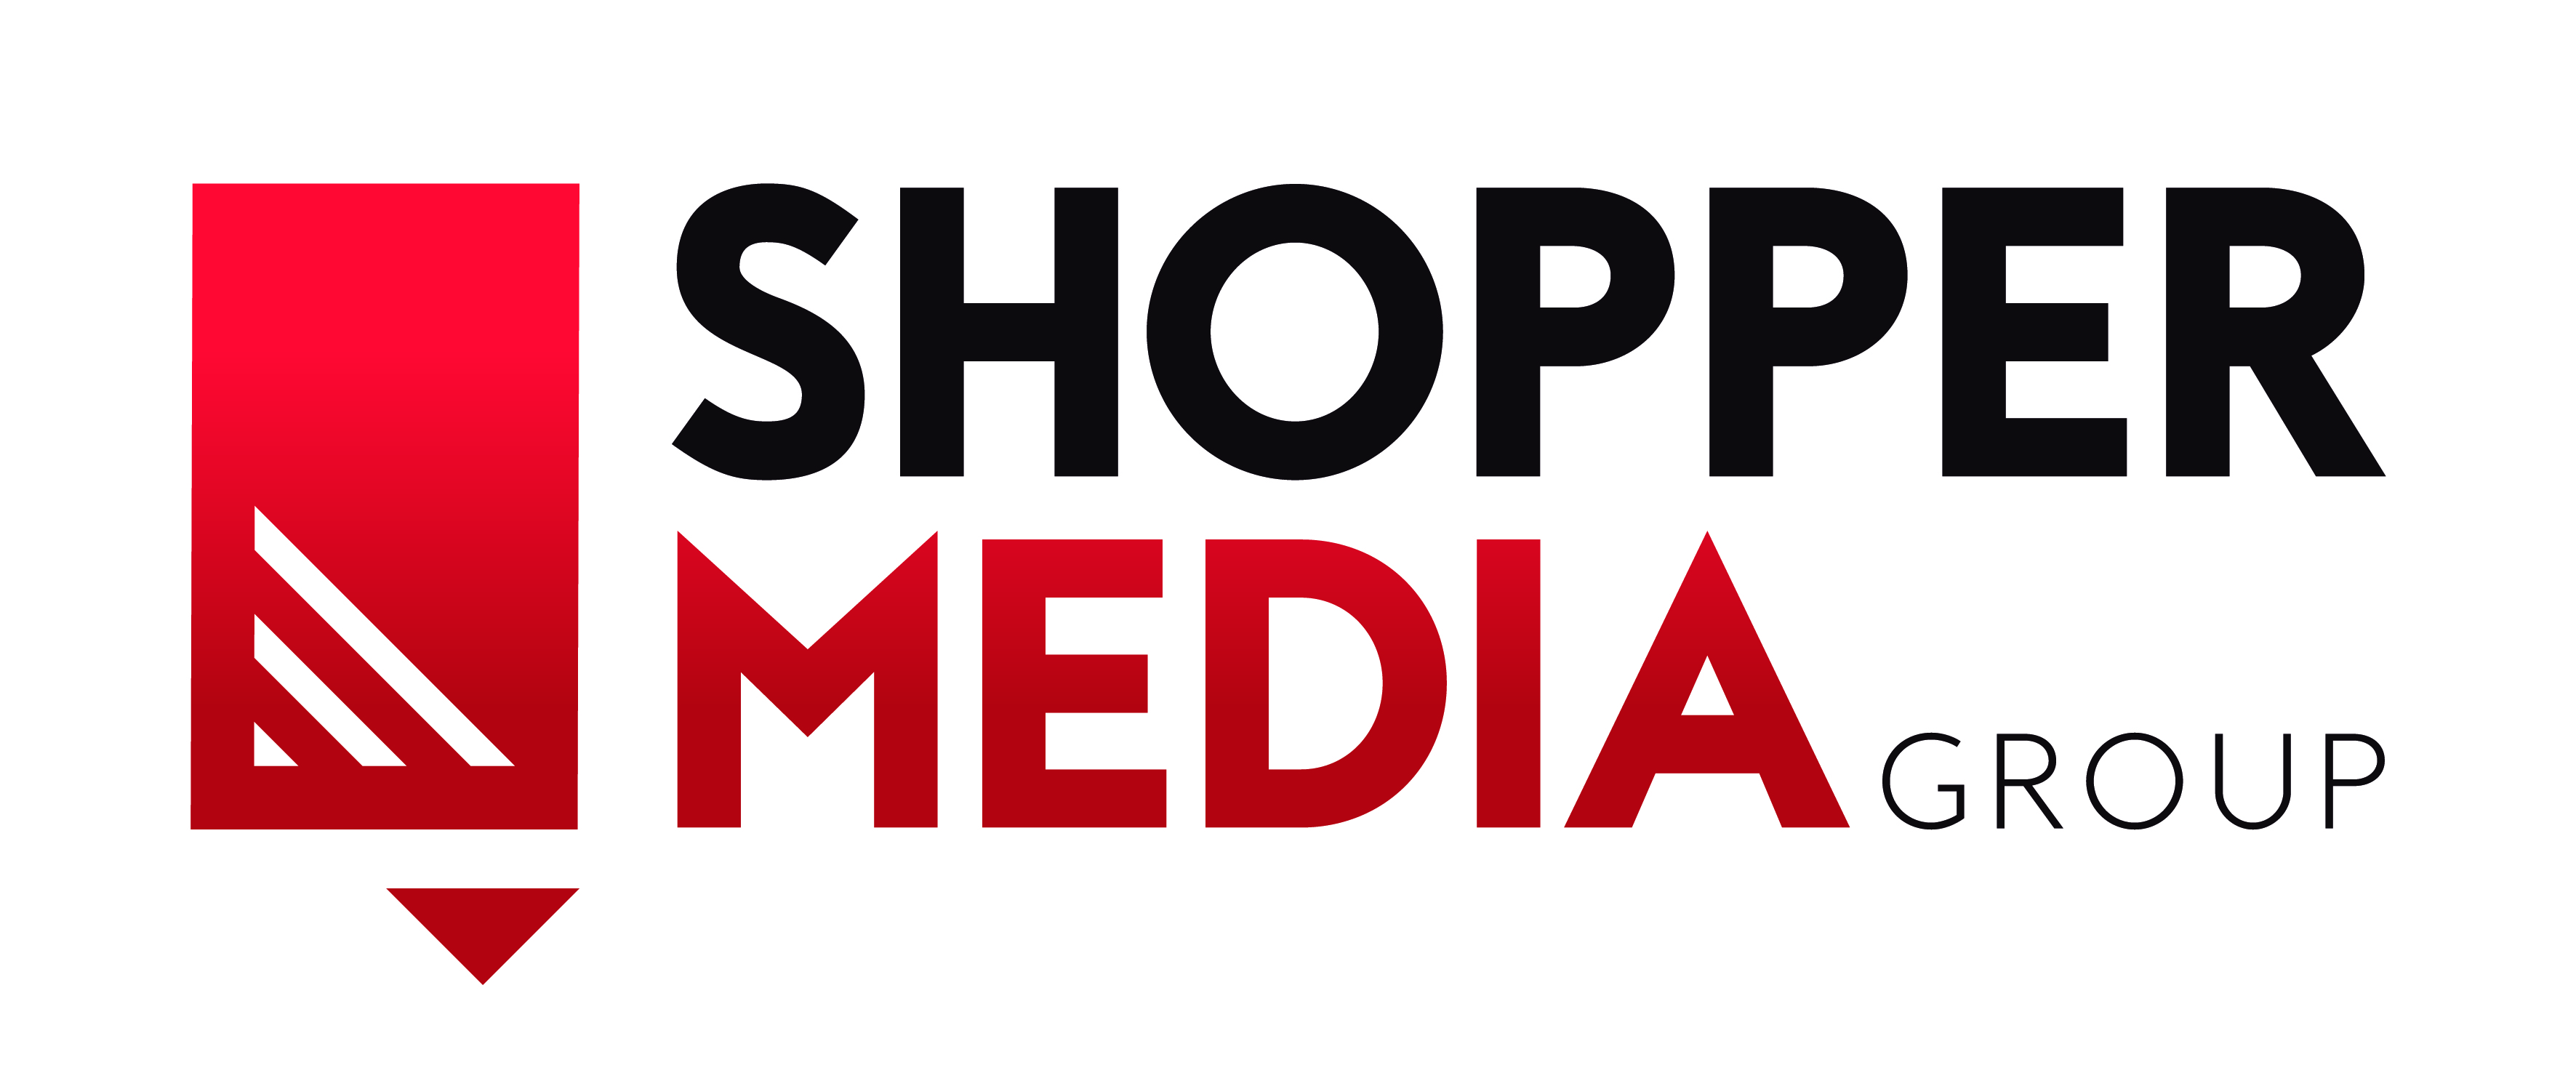 Shopper Media Group logo